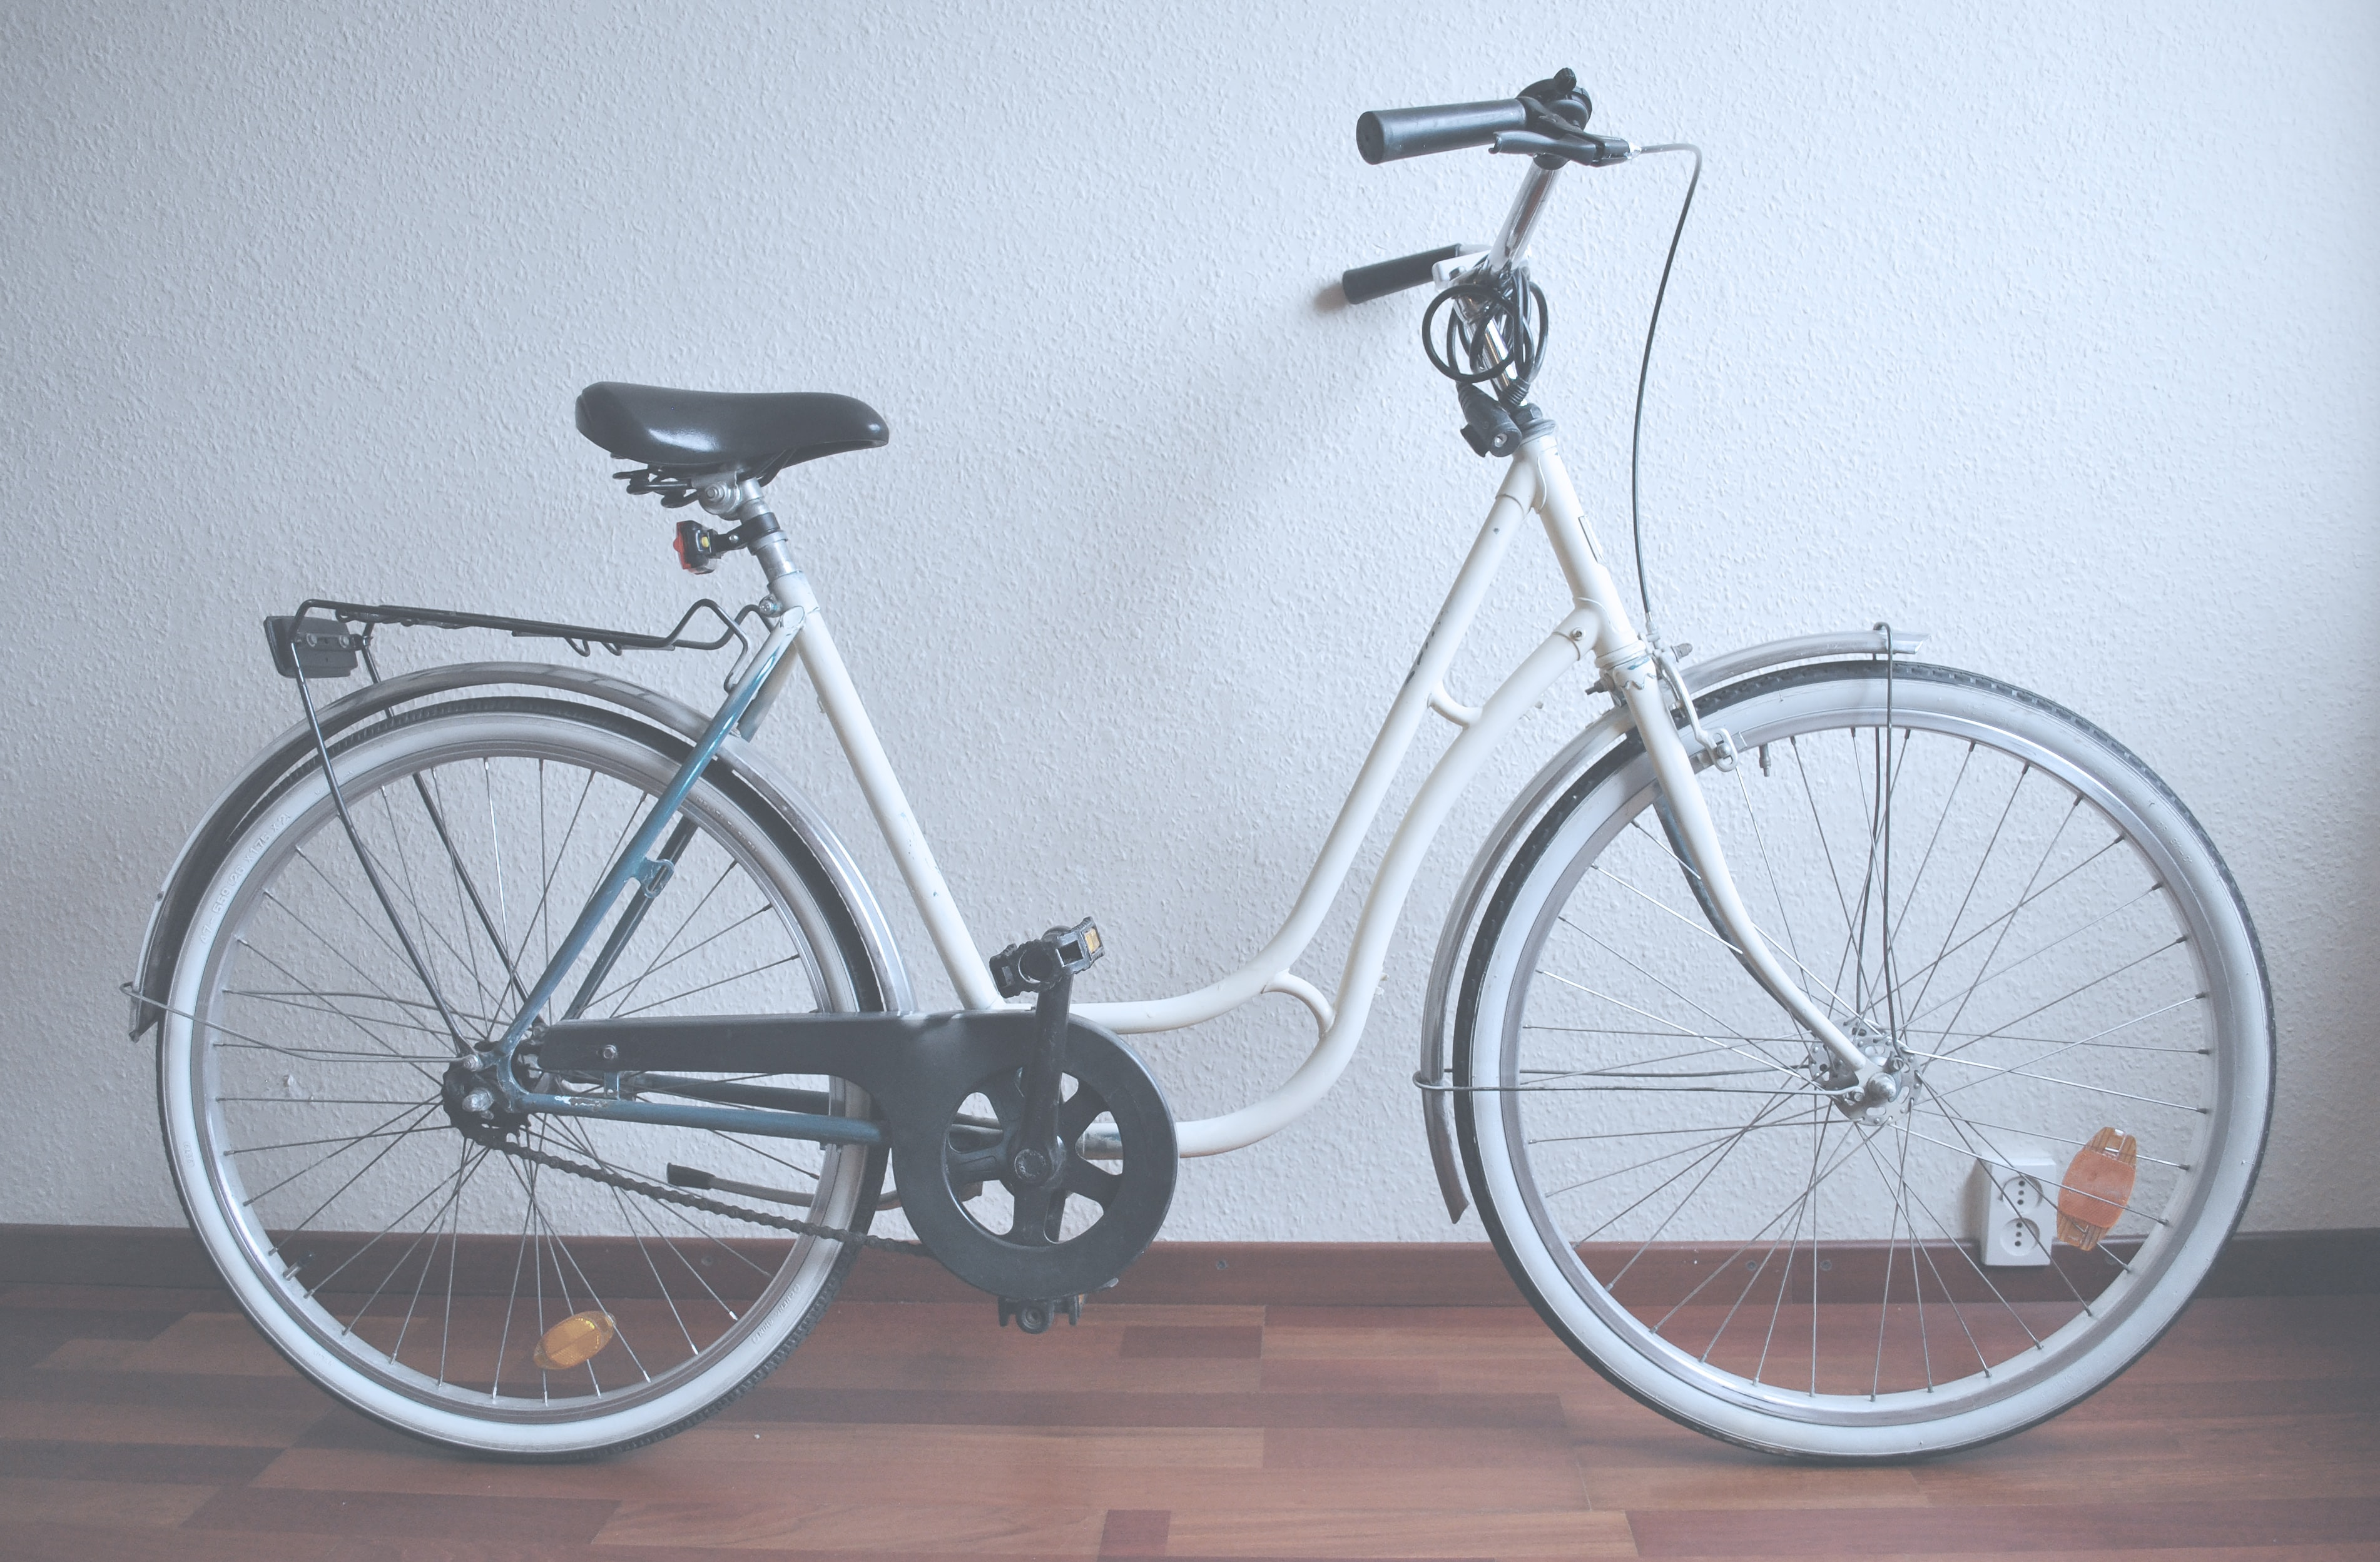 A white bicycle with a lock